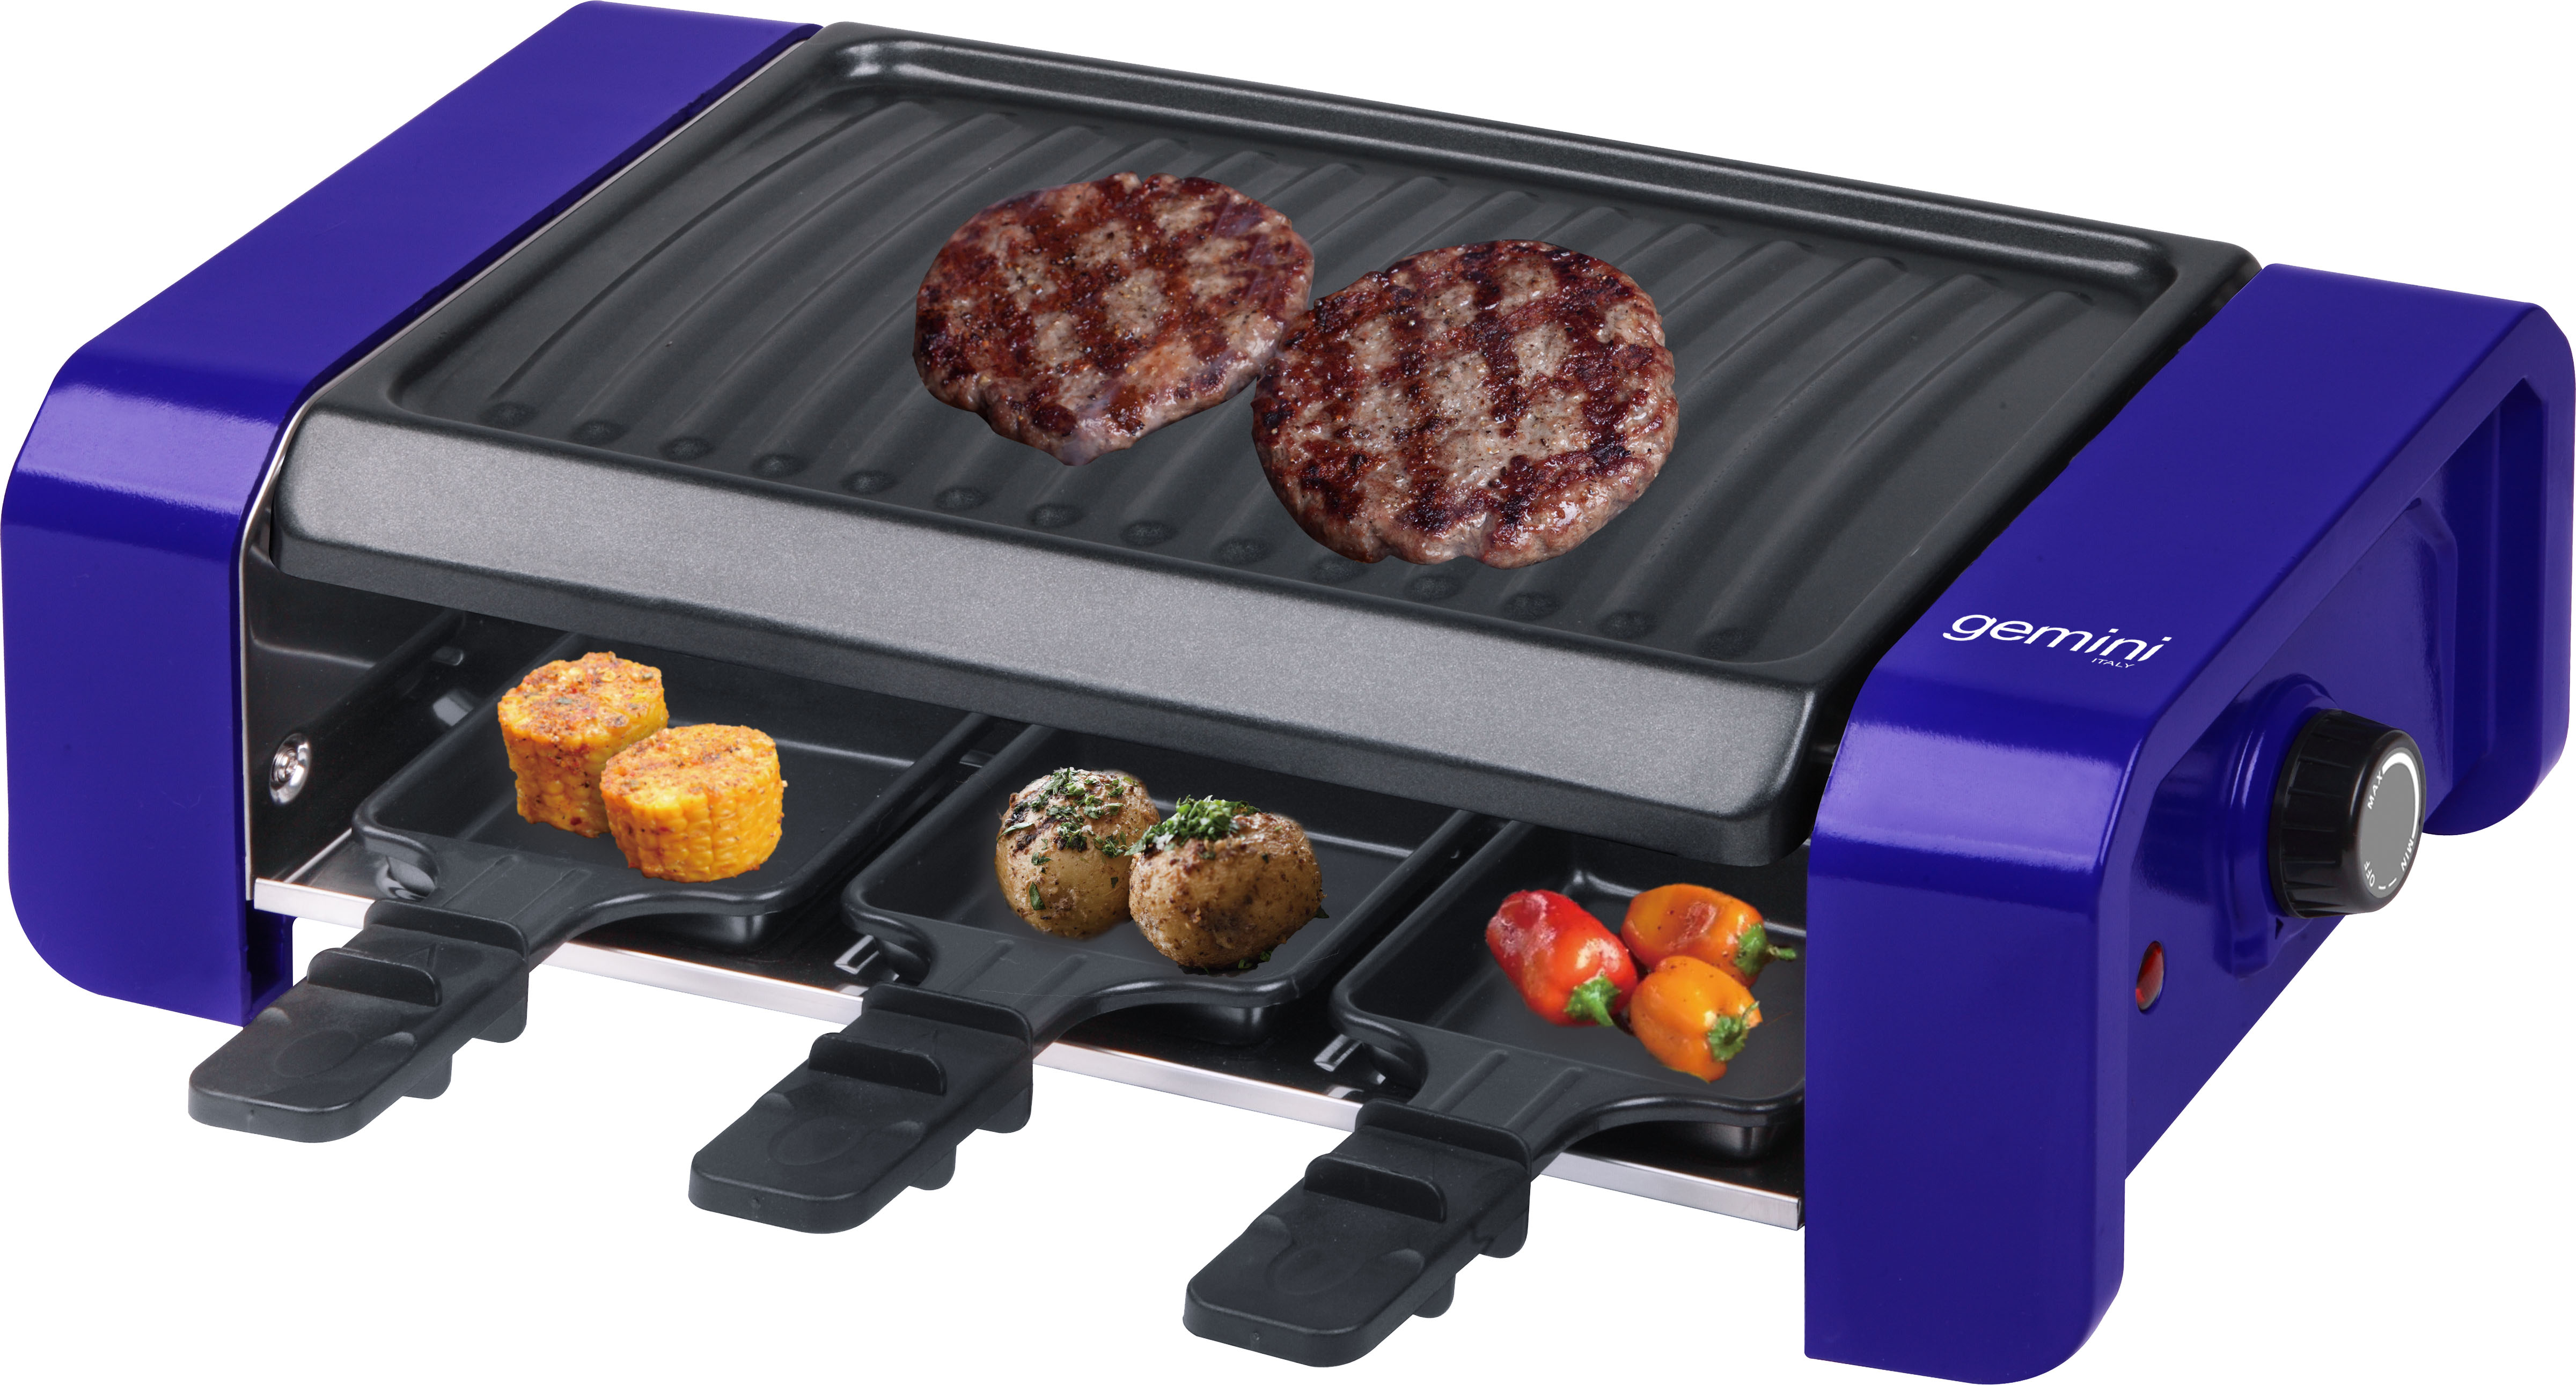 Gemini 3-IN-1 Electric BBQ Griller GBG900V